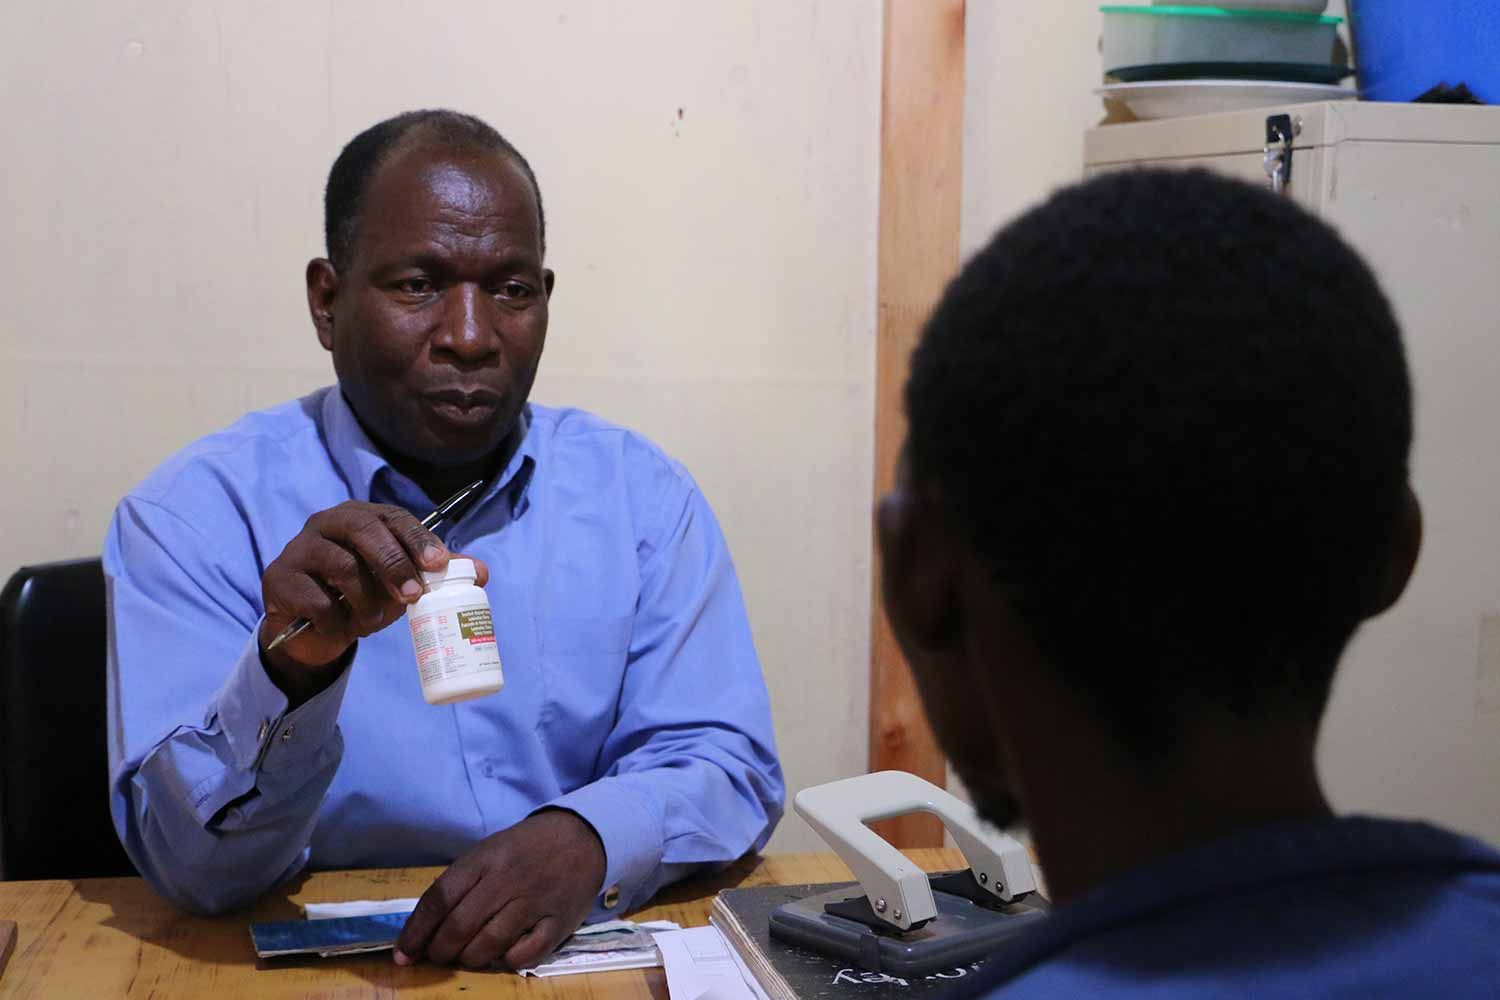 New integrated TB/HIV clinic brings critically needed care to overlooked area